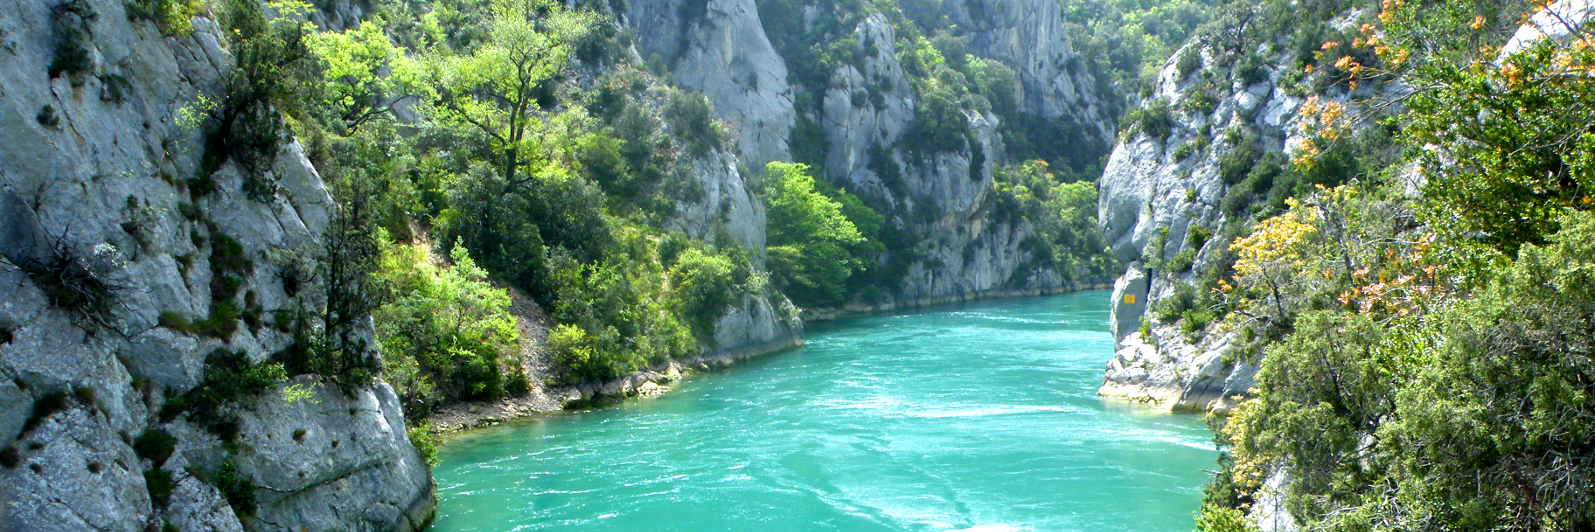 Location vacances gorges du verdon for Camping verdon piscine